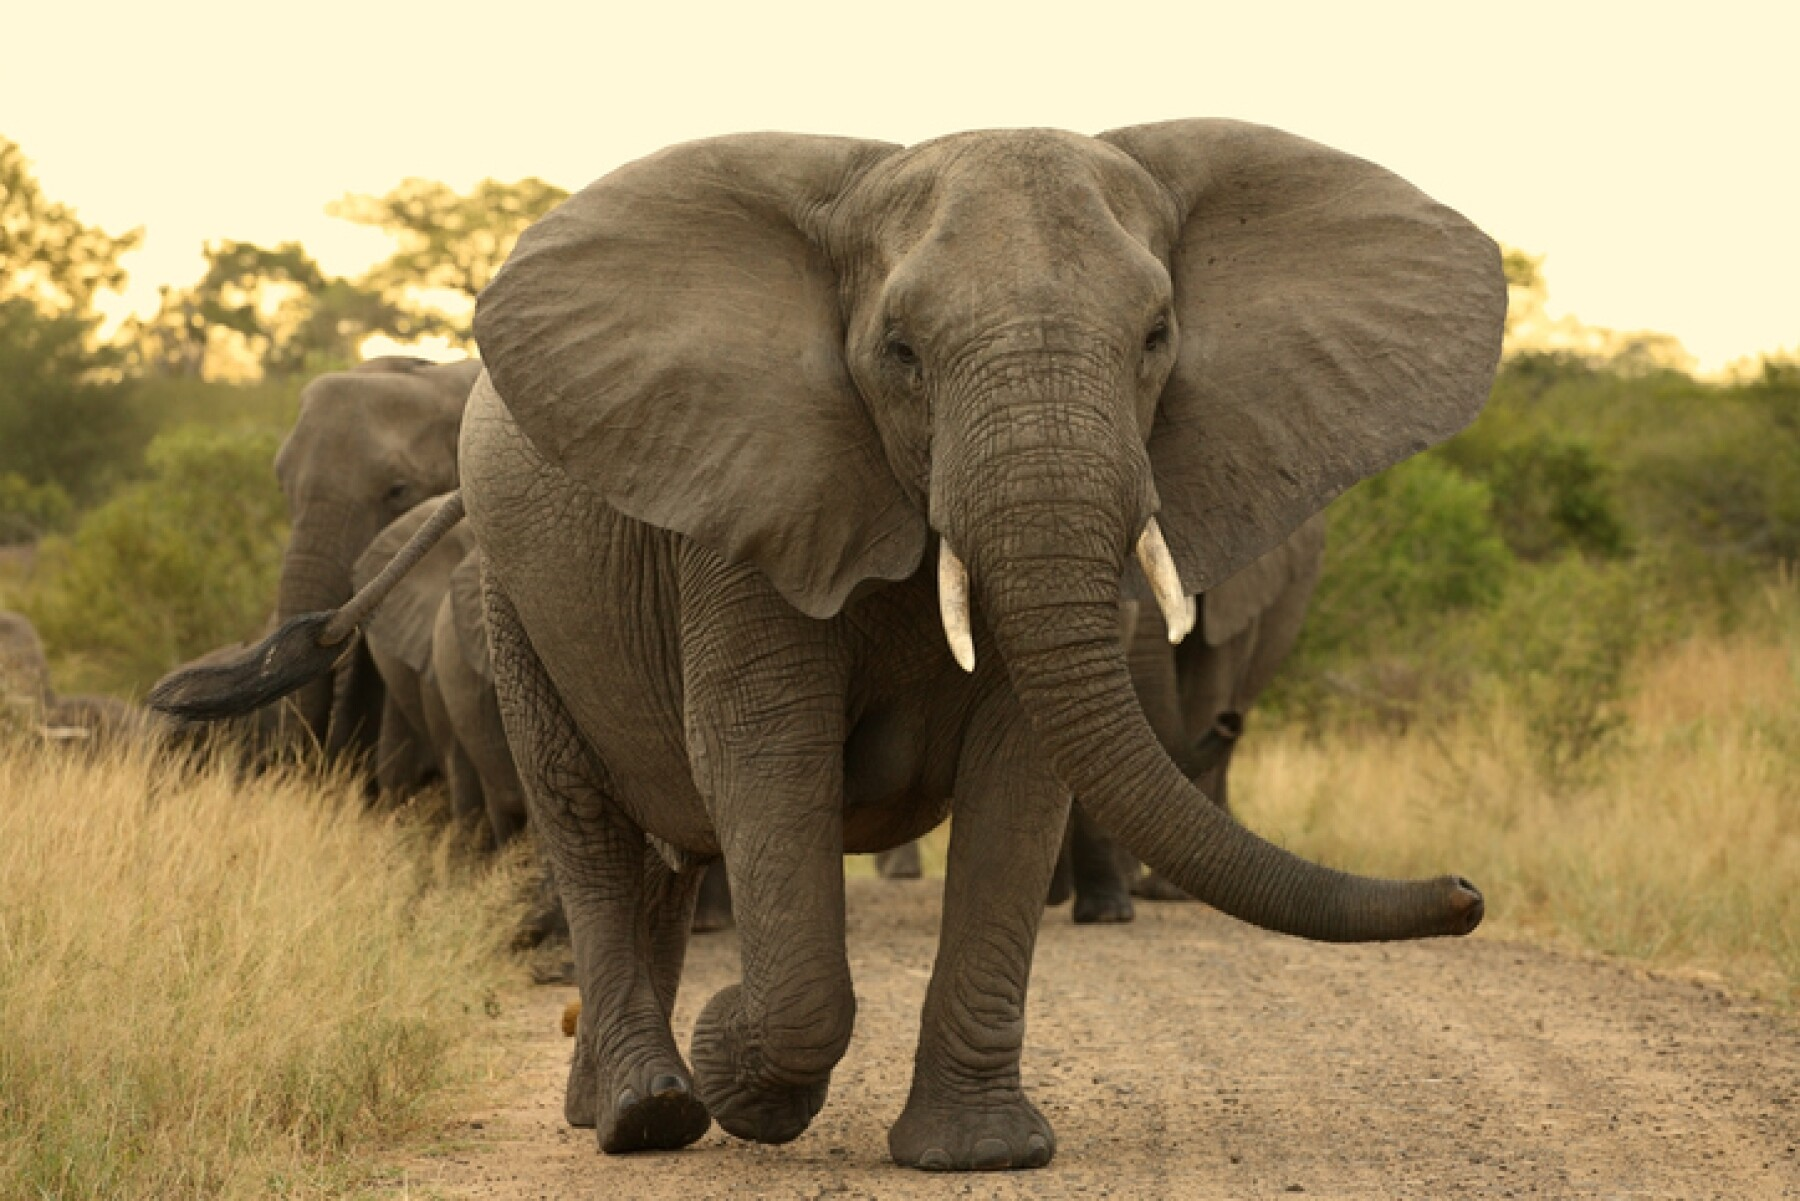 Elephant matriarch cow leading a herd.